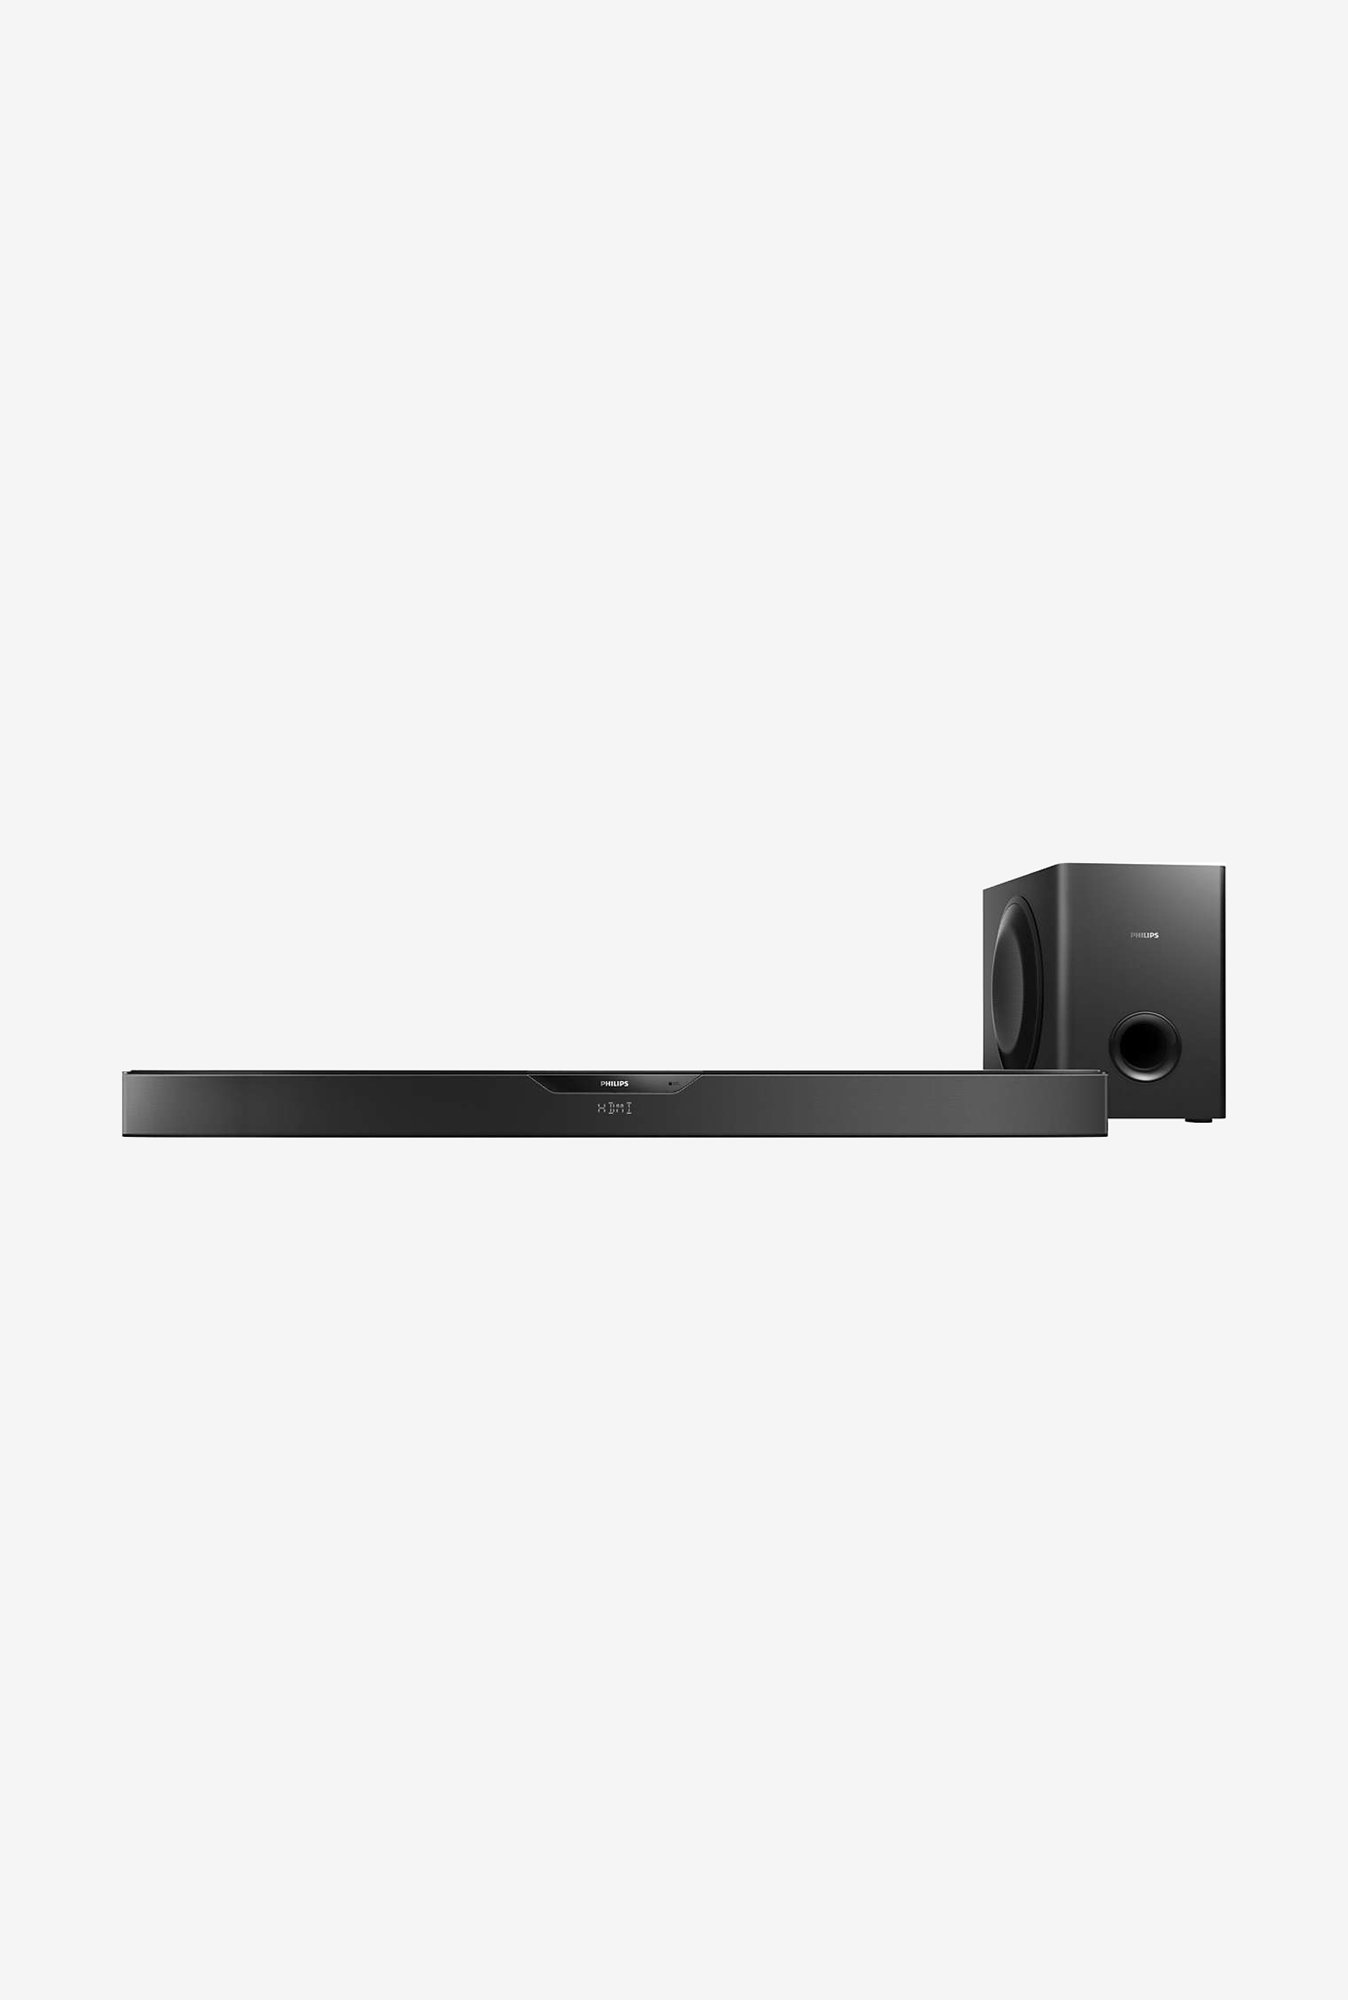 Philips  HTL6140/12 Sound Bar Black